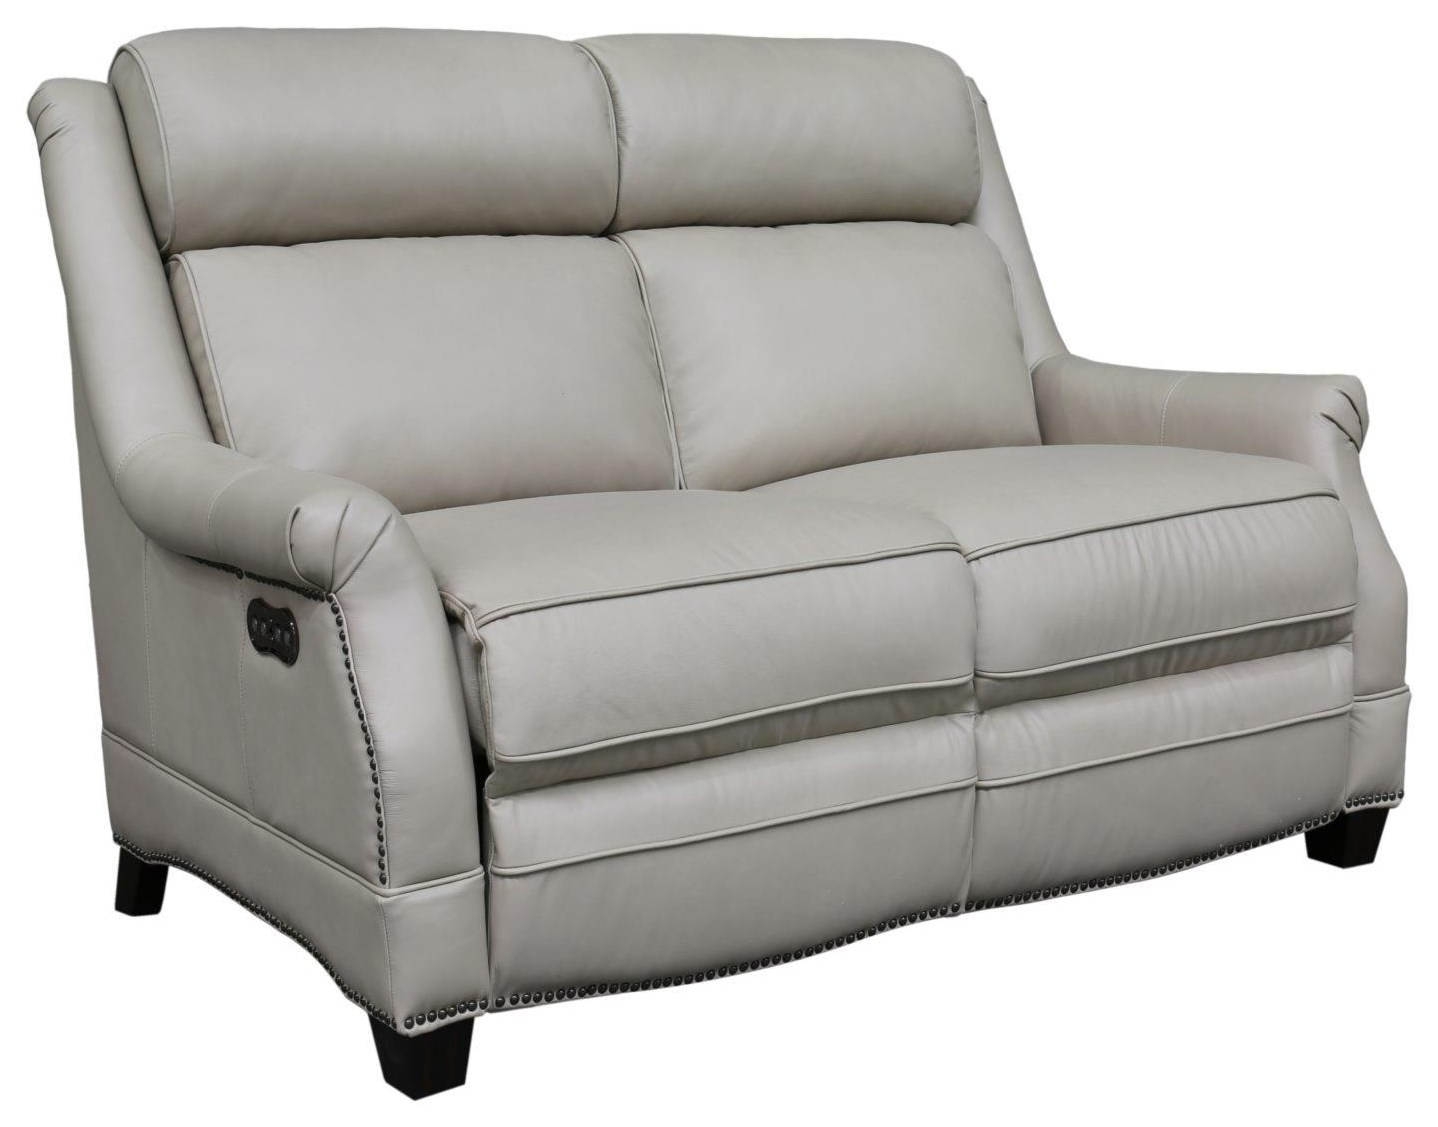 Warrendale power loveseat by Barcalounger at Johnny Janosik